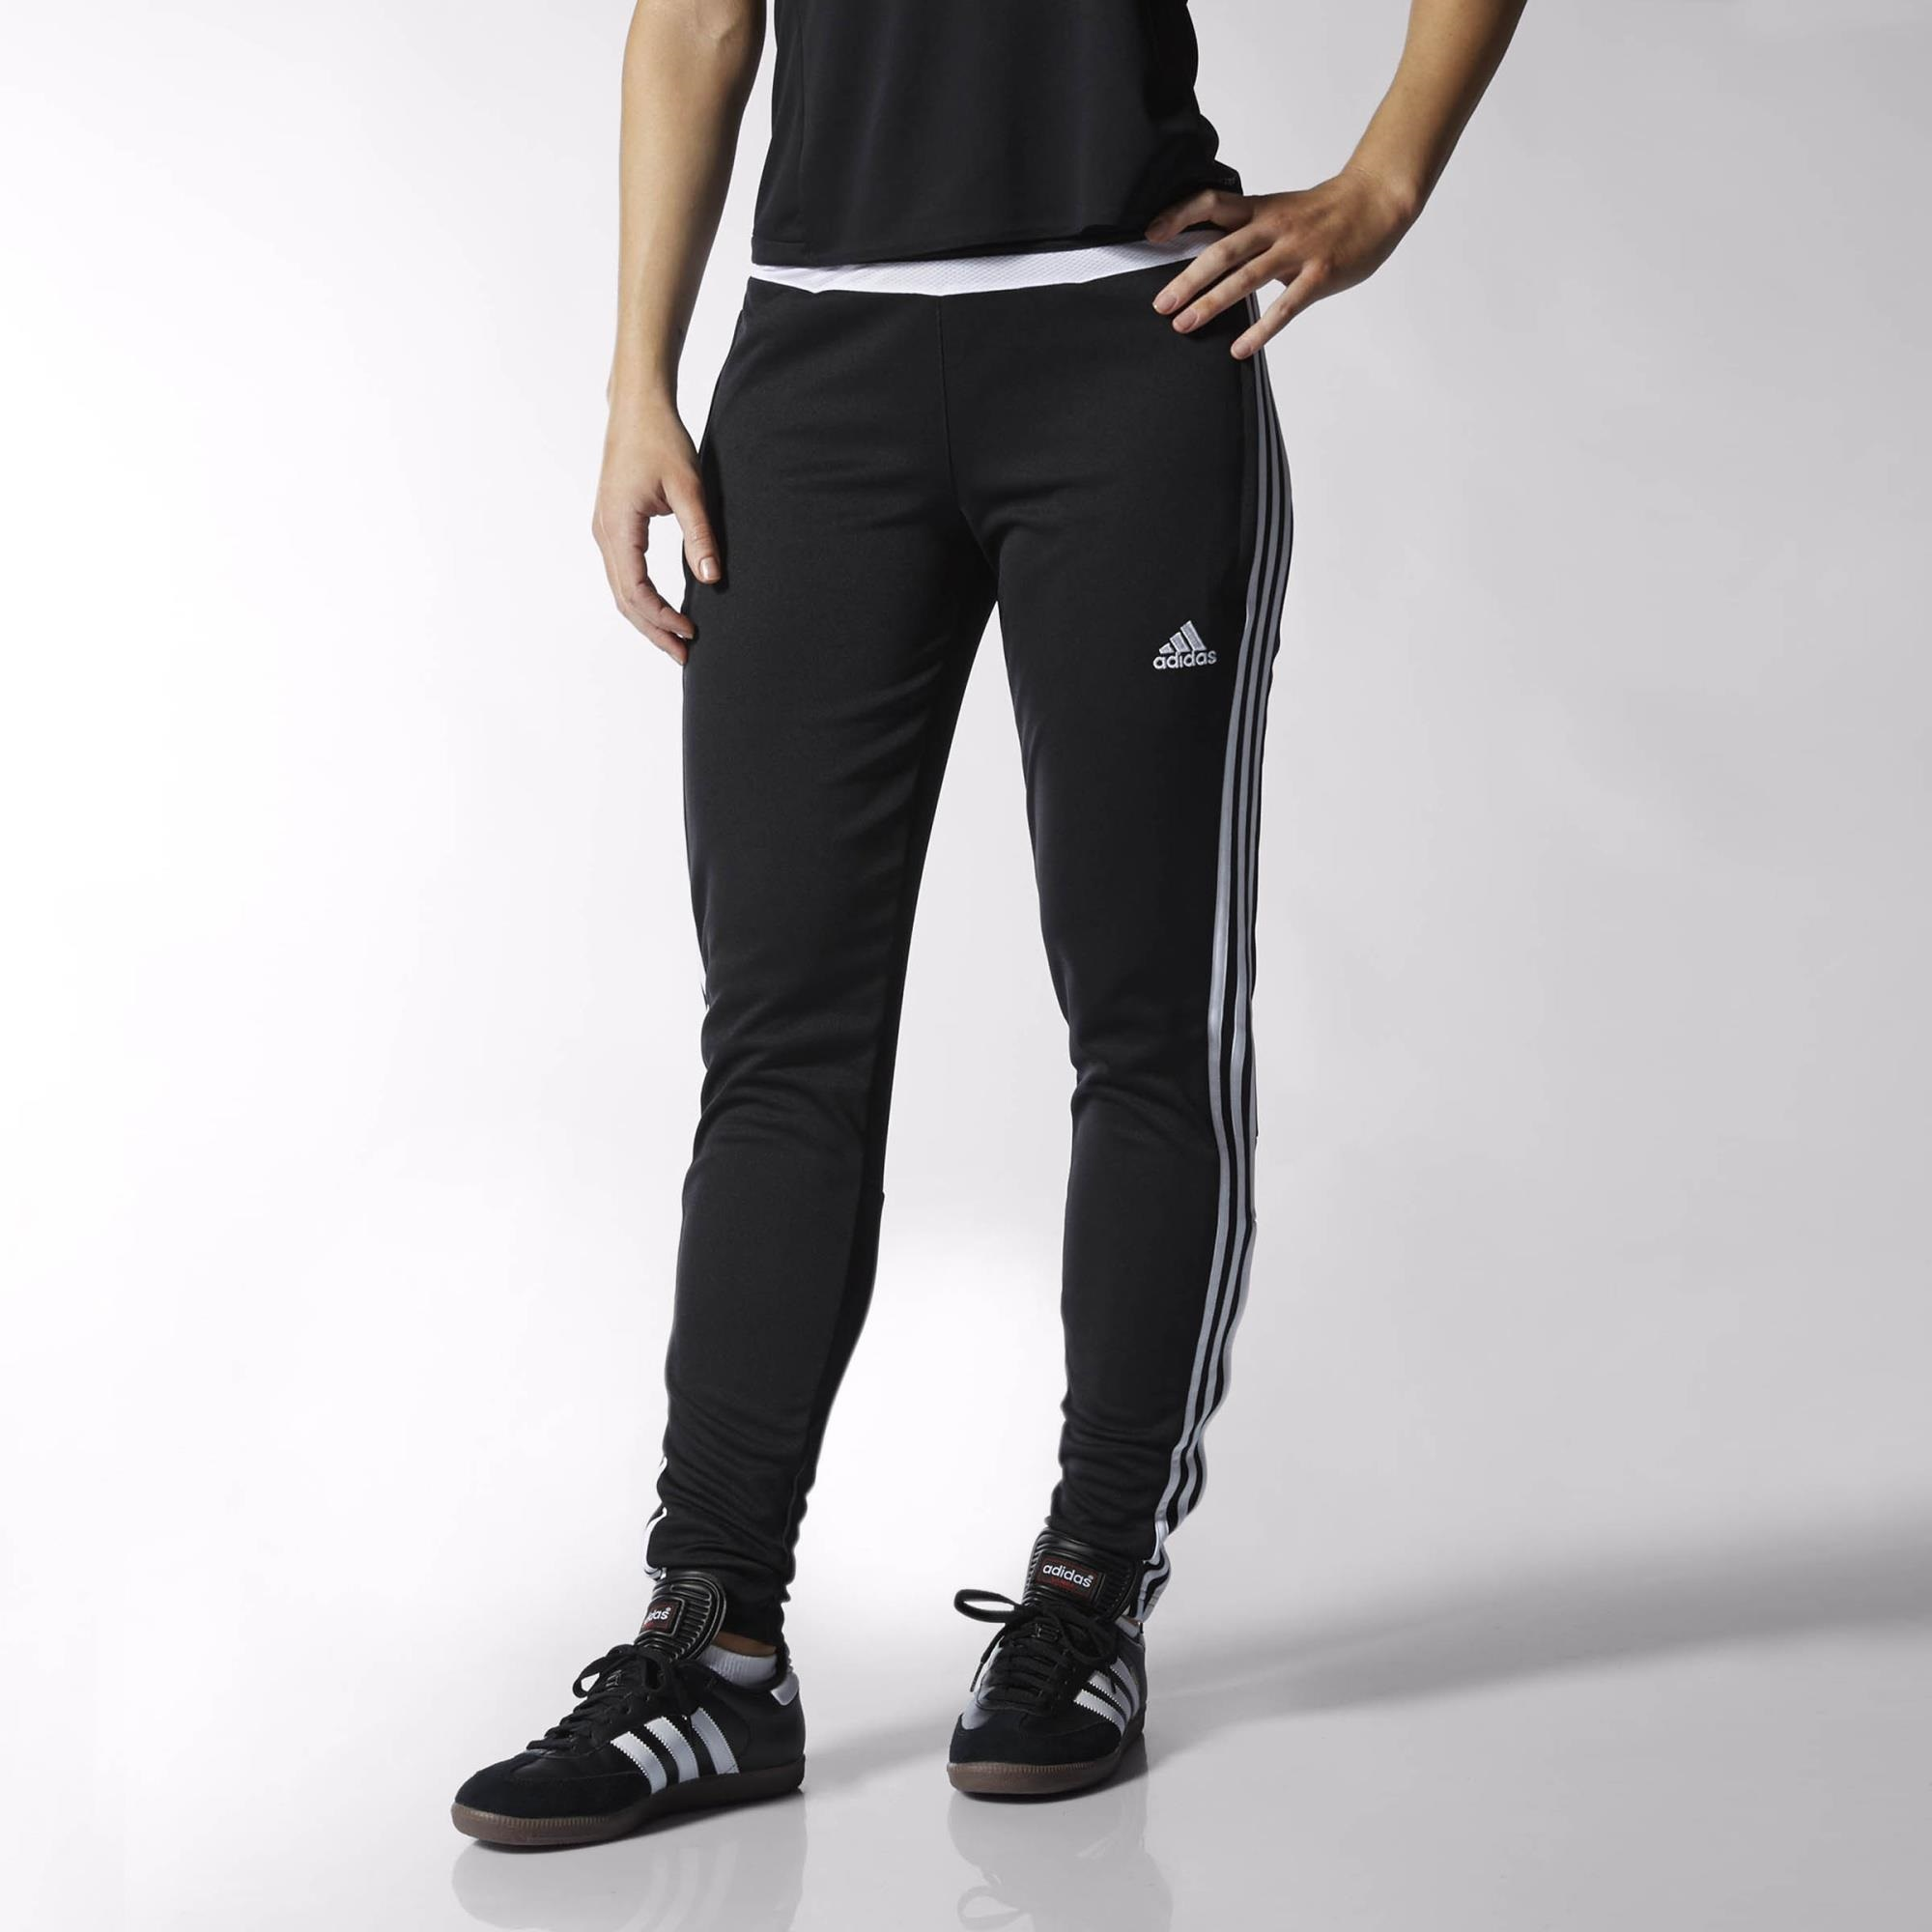 adidas tiro certo financial services ltd